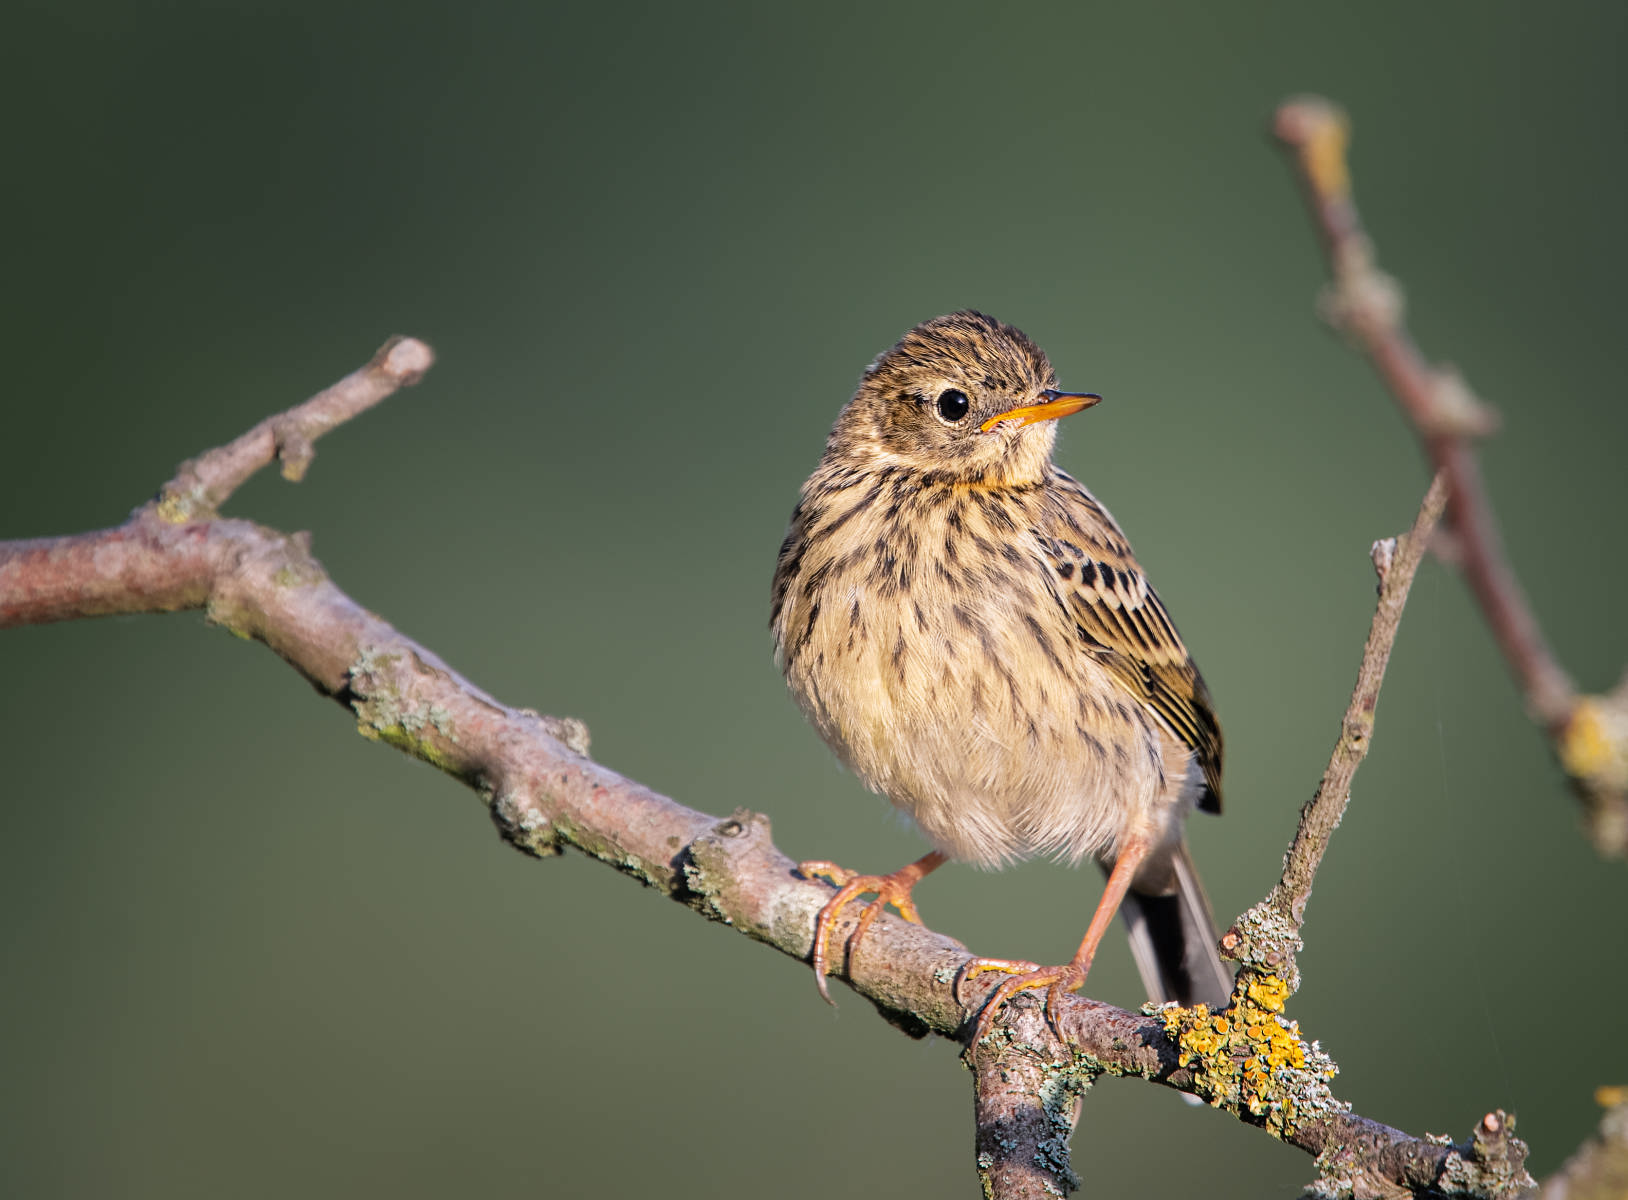 meadow pipit on lichen covered branch